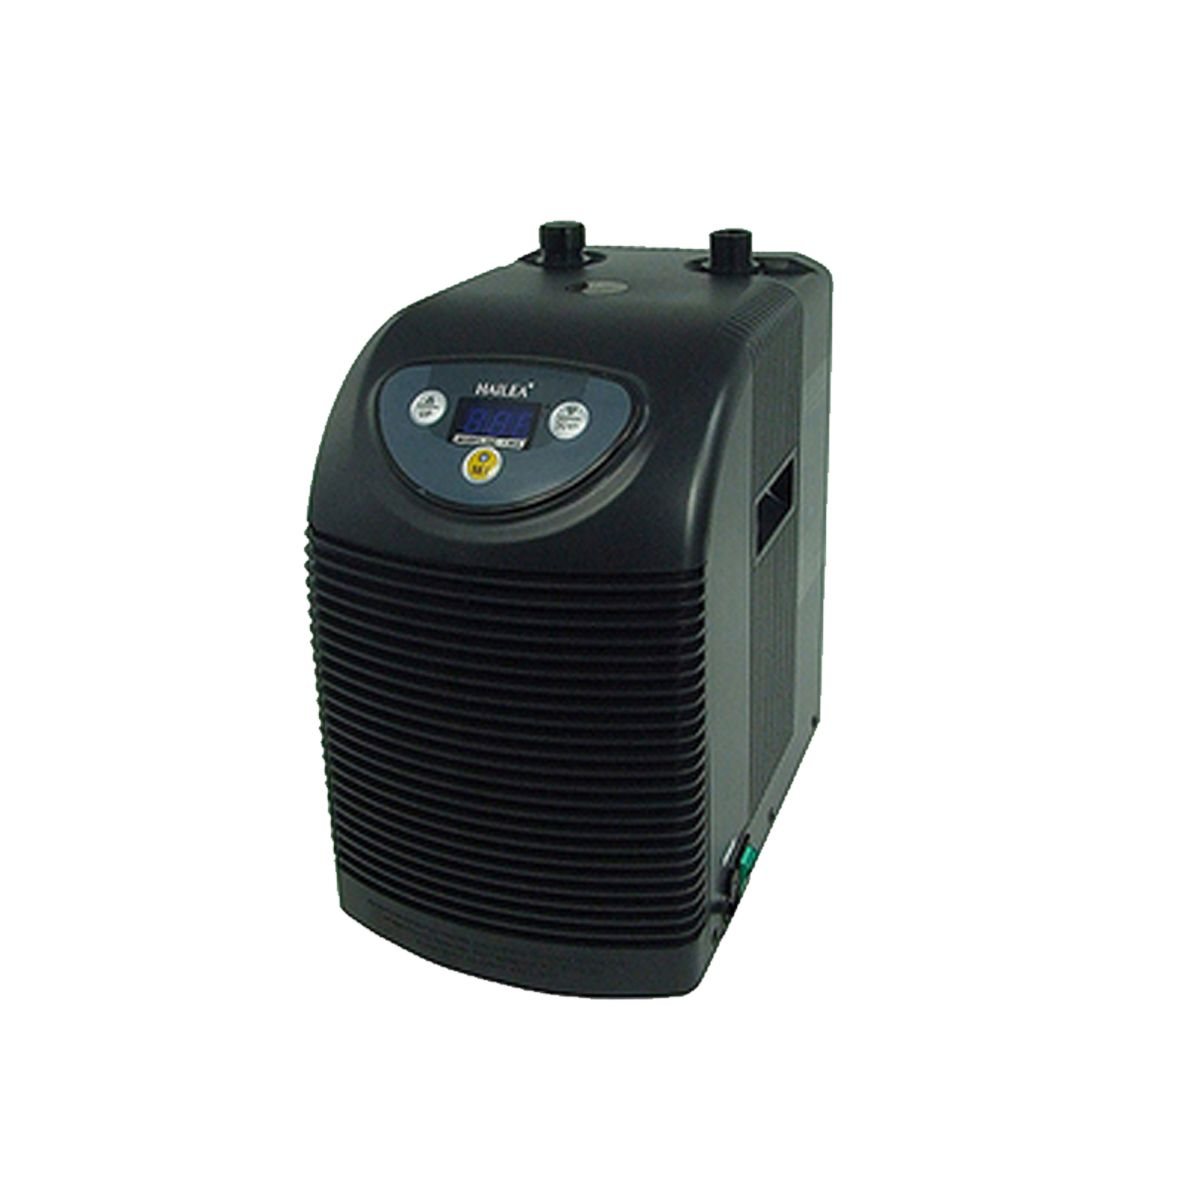 Hailea Water Chiller HC250A 250 Litre Water Cooling Capacity 240V~50Hz